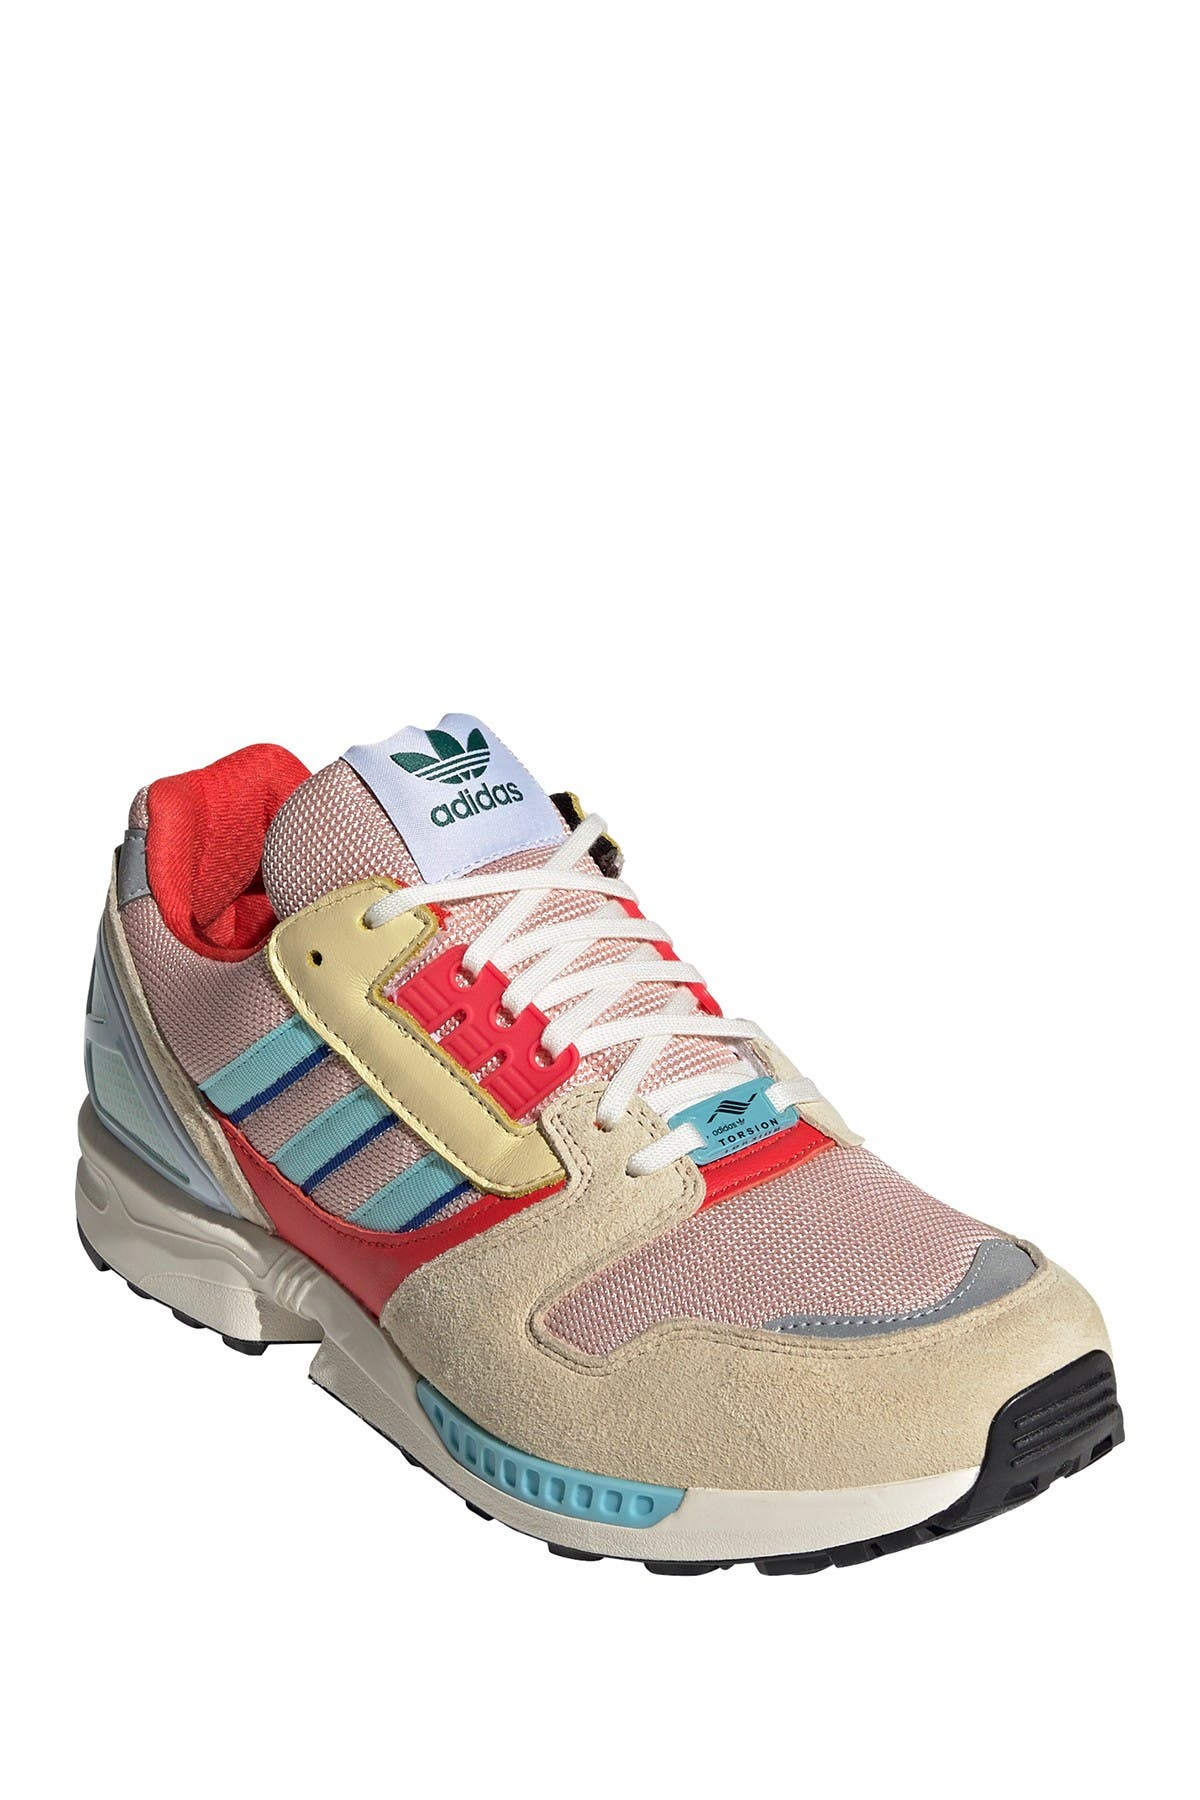 Image of adidas ZX 8000 Sneaker